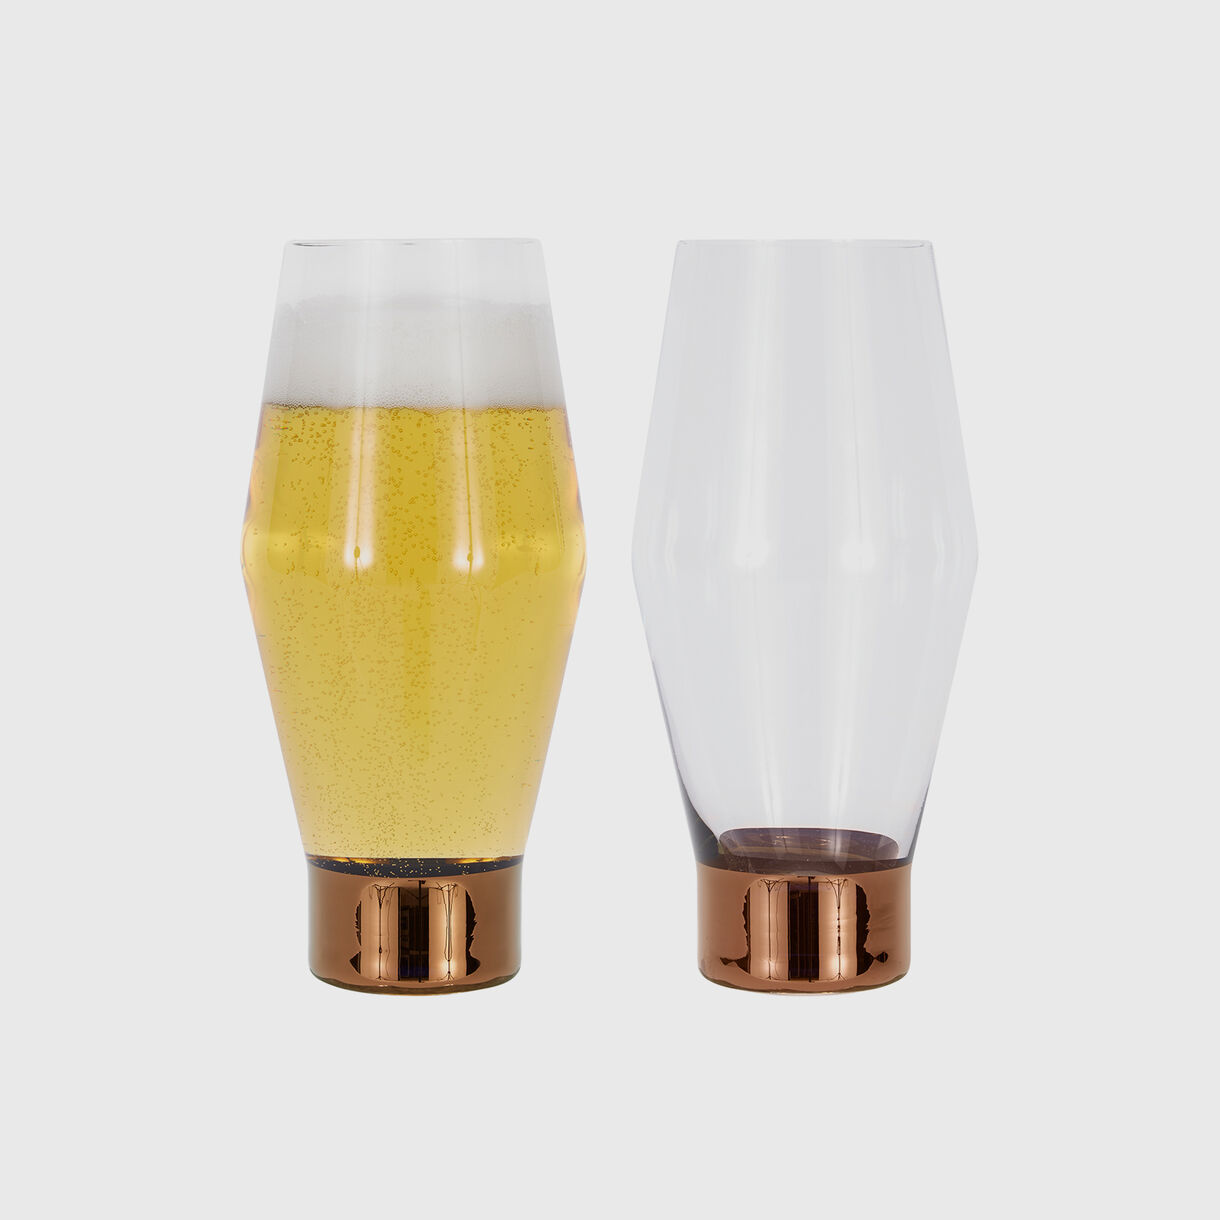 Tank Beer Glasses, Copper